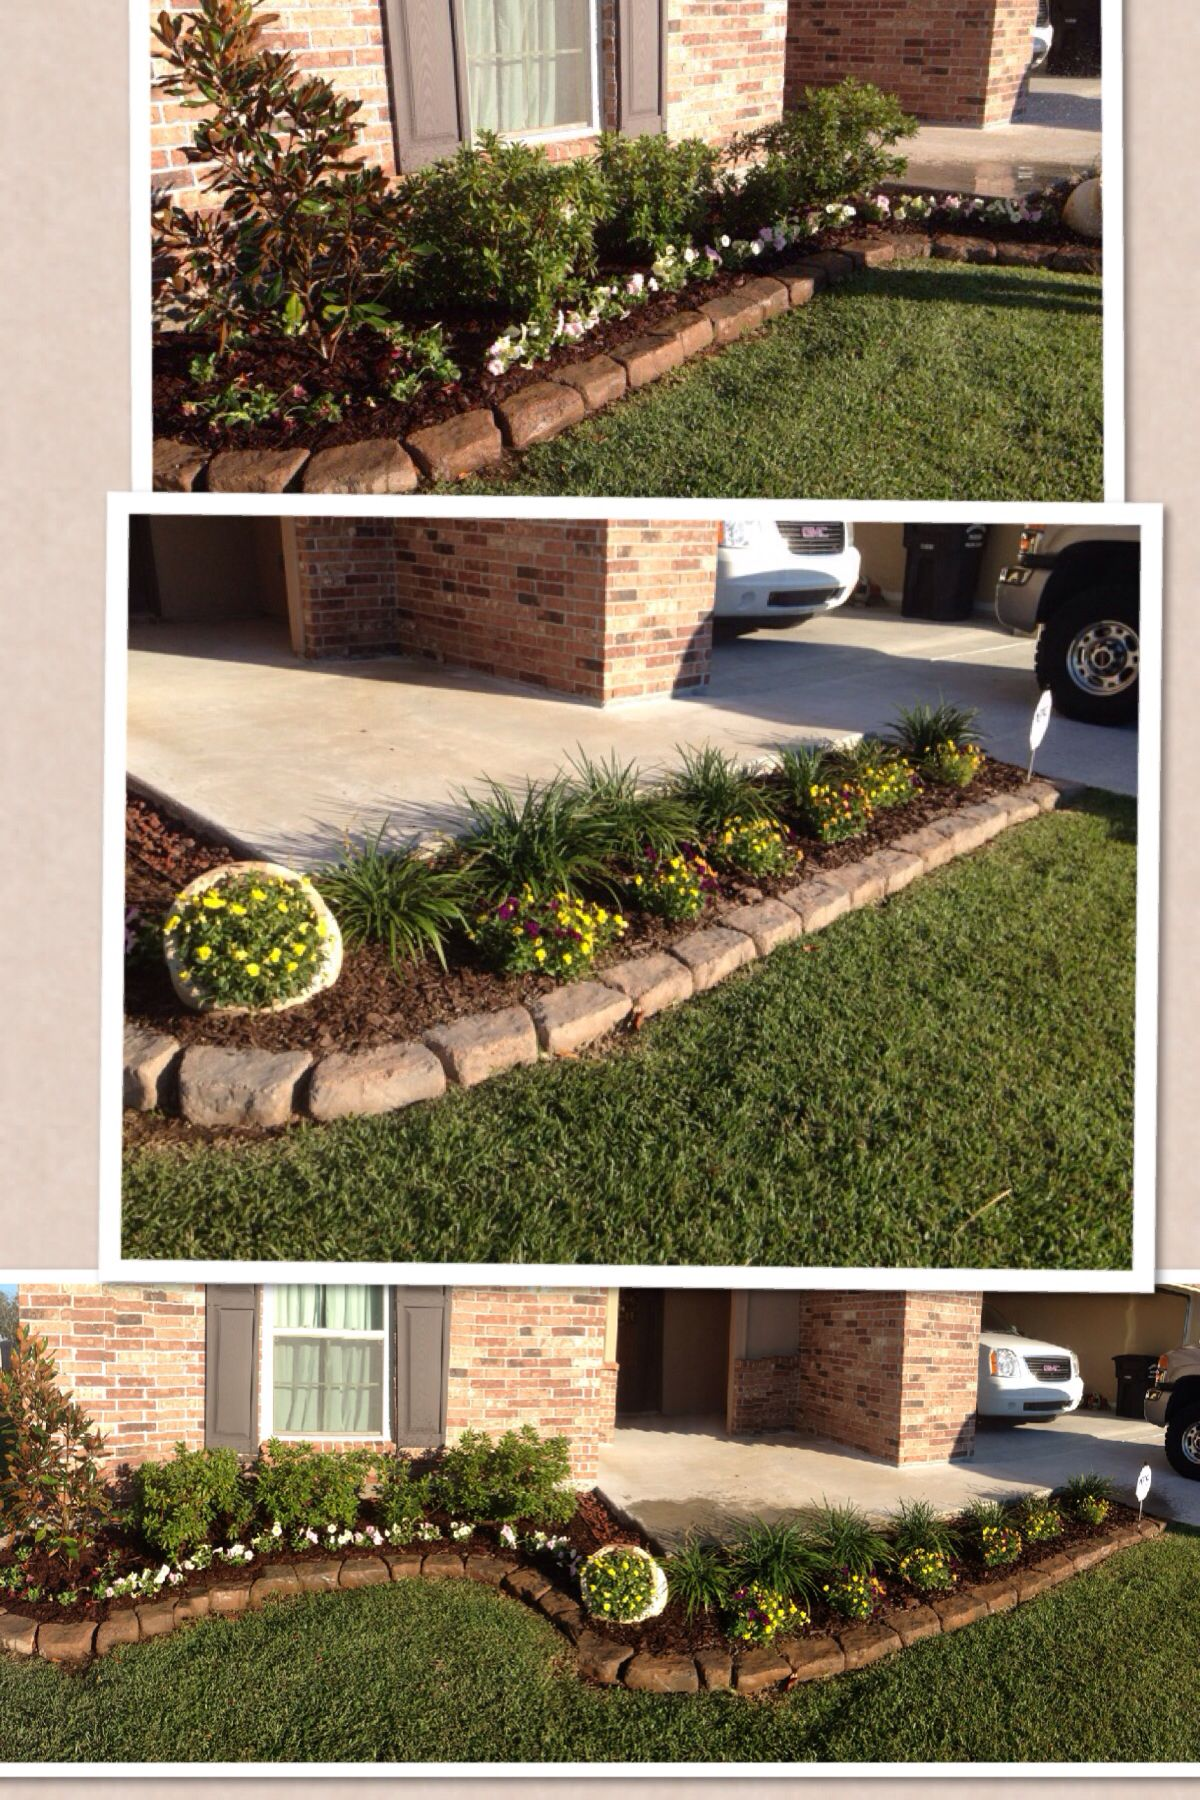 Simple front flower bed design - Flower Gardening ...